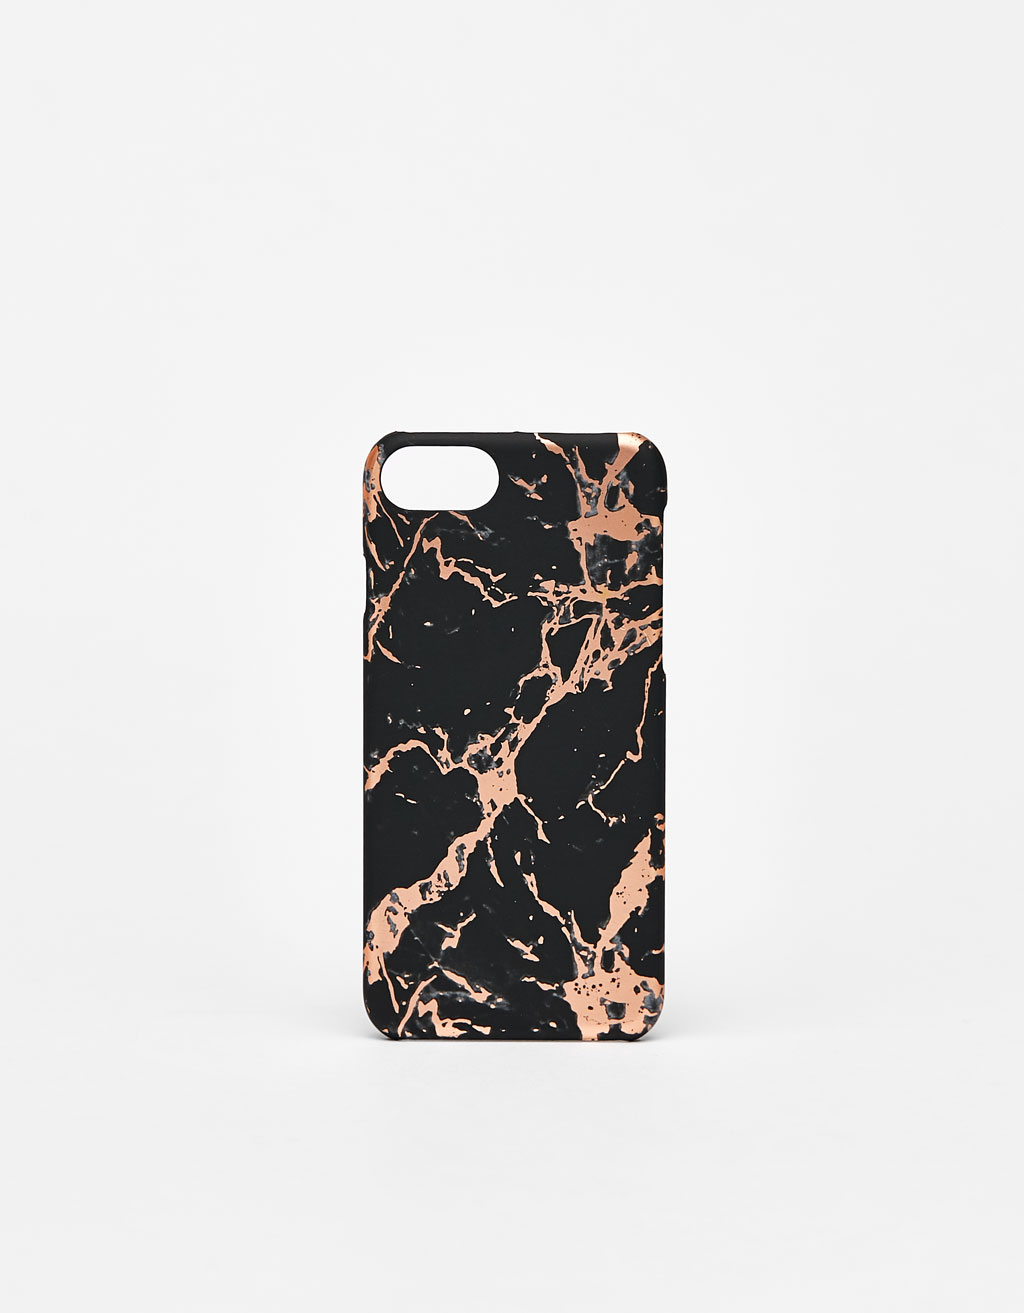 Coque imitation marbre iPhone 6/6s/7/8